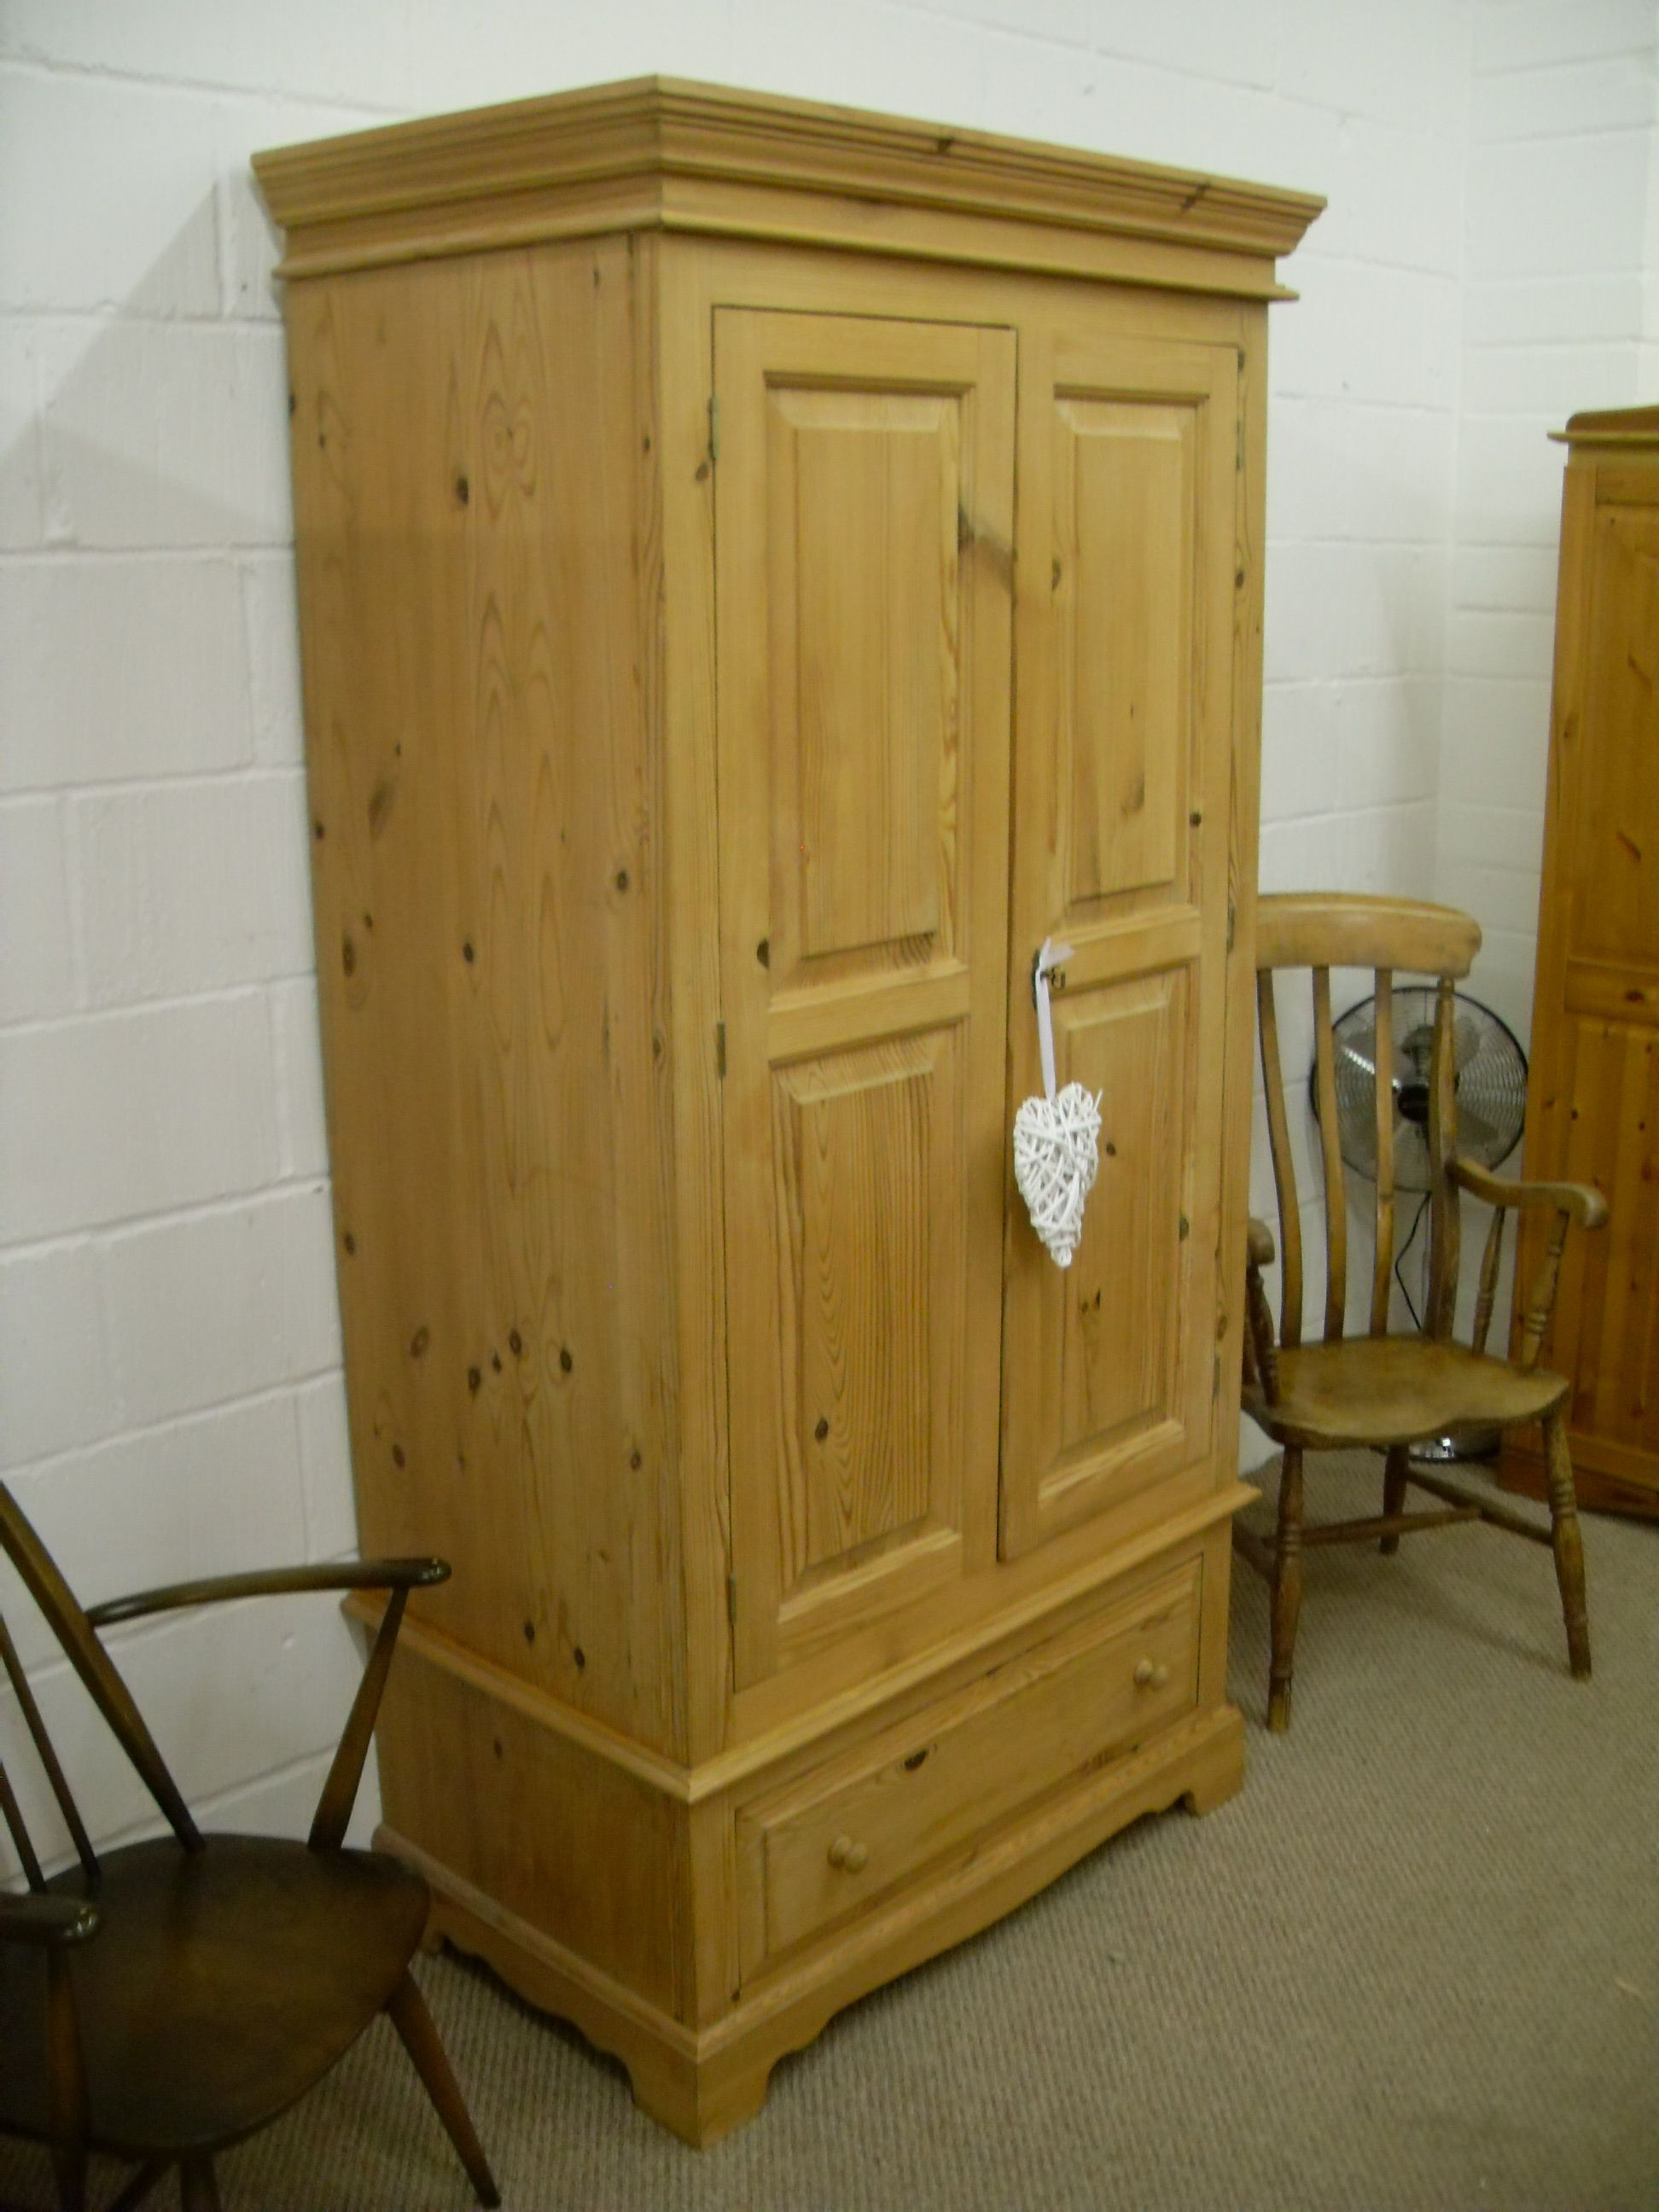 BEAUTIFUL SOLID PINE DOUBLE WARDROBE QUALITY MADE - £275 ...